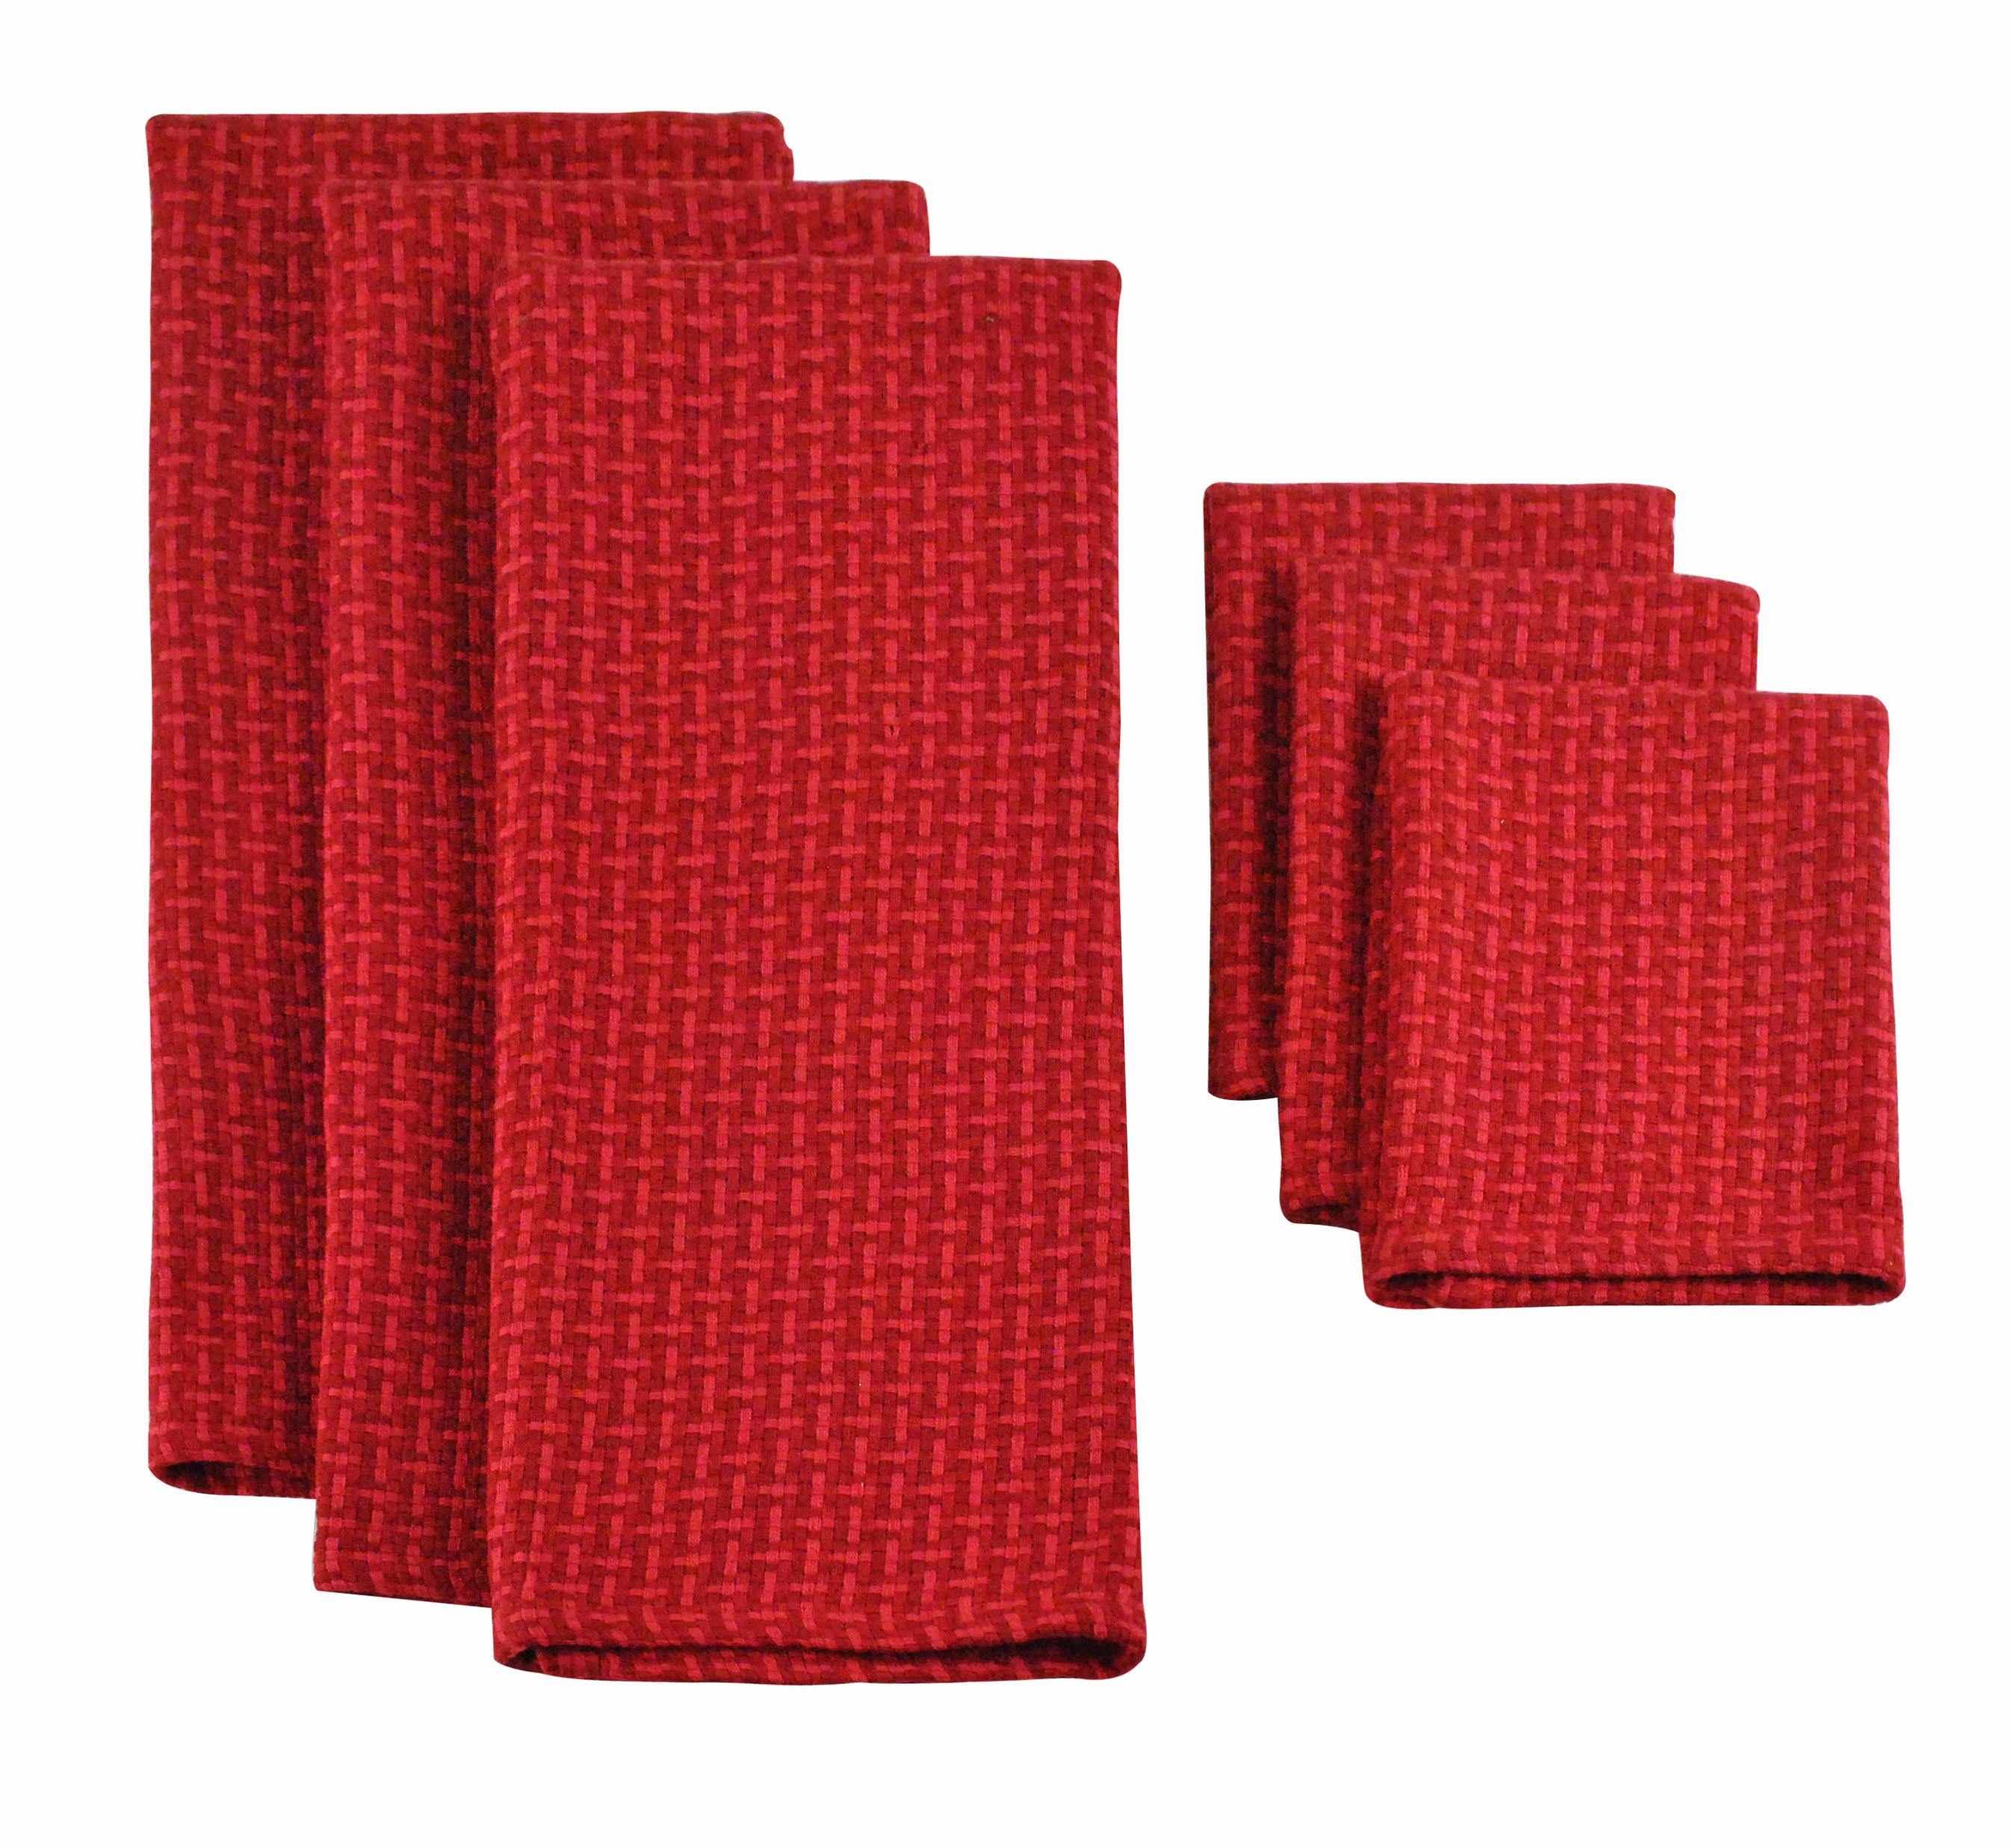 Design Imports Heavyweight Dishtowel and Dishcloth Set (3 Pieces), Currant